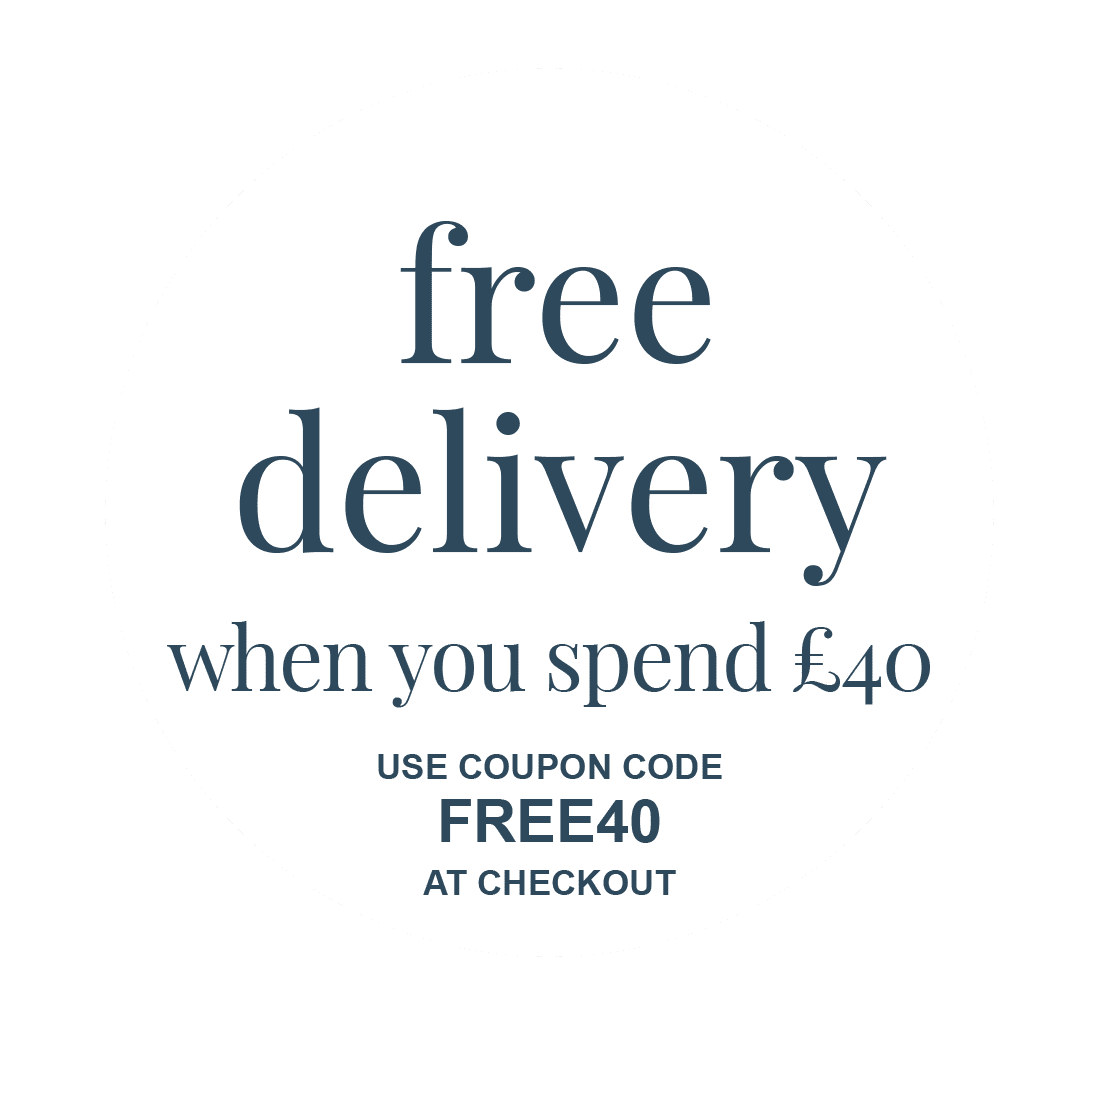 Free delivery when you spend £40 - Use coupon code FREE40 at checkout